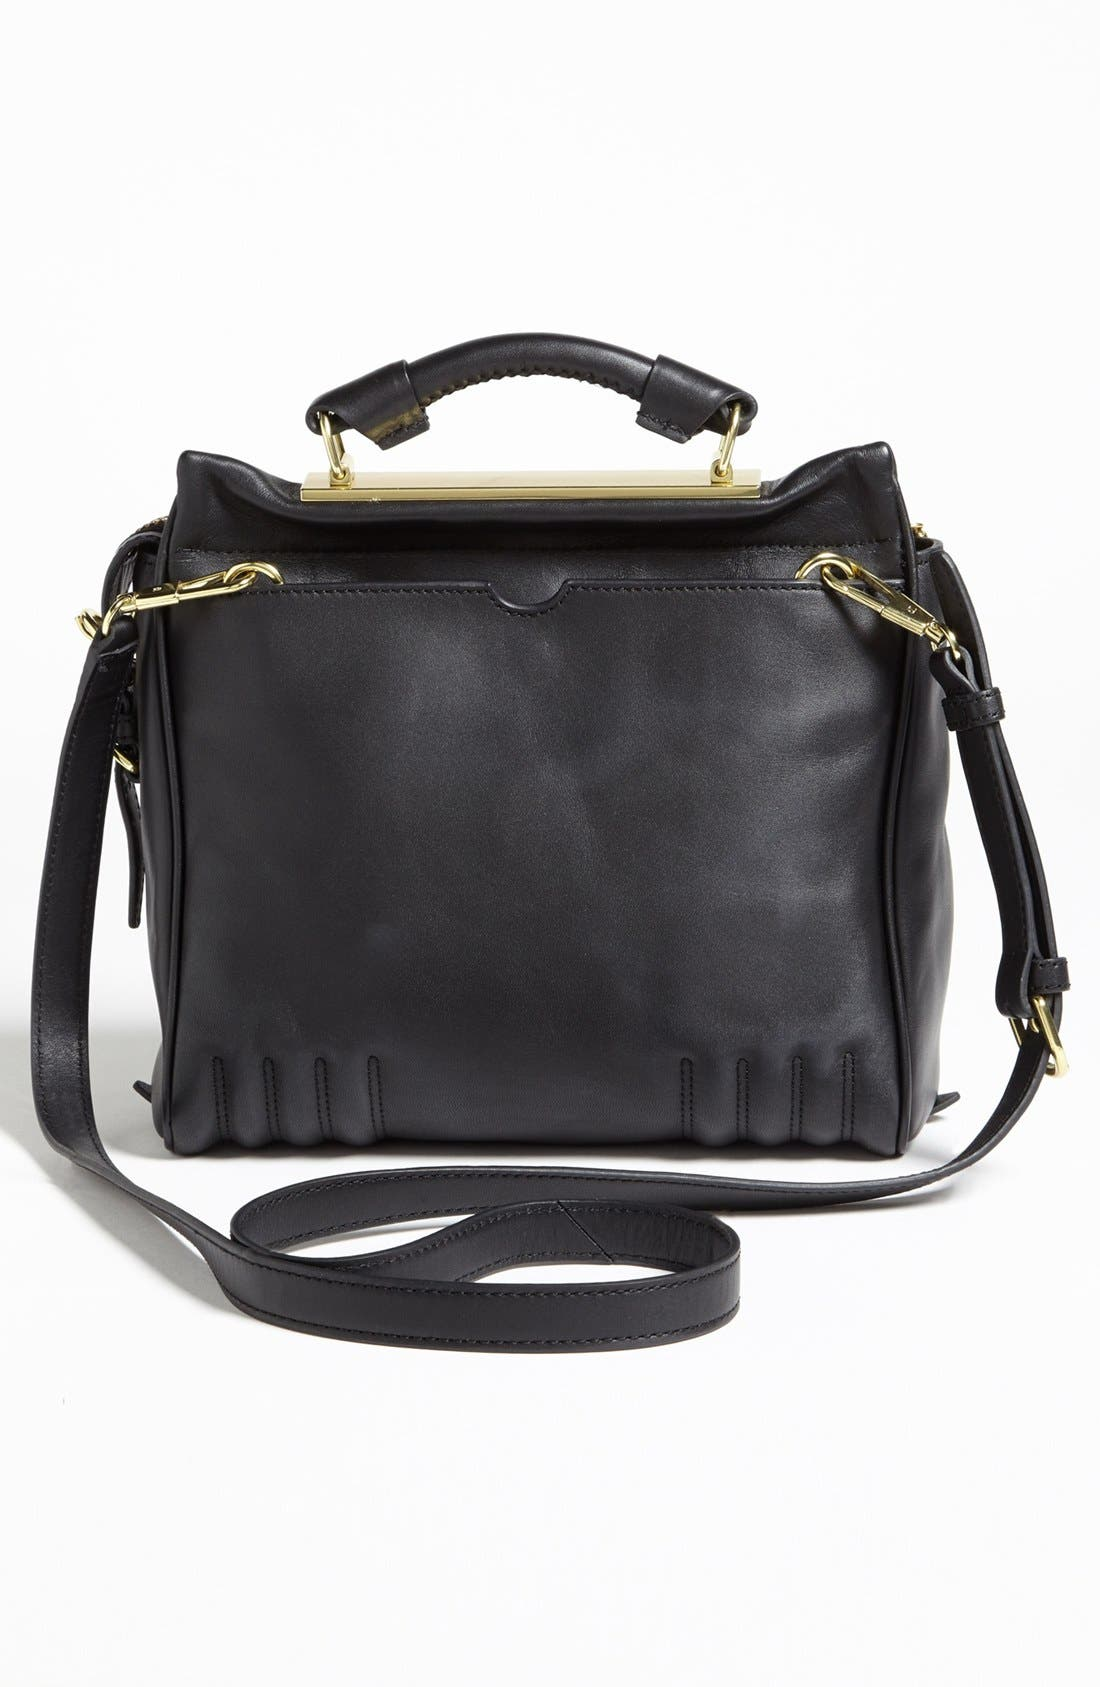 Alternate Image 4  - 3.1 Phillip Lim 'Small Ryder' Leather Satchel